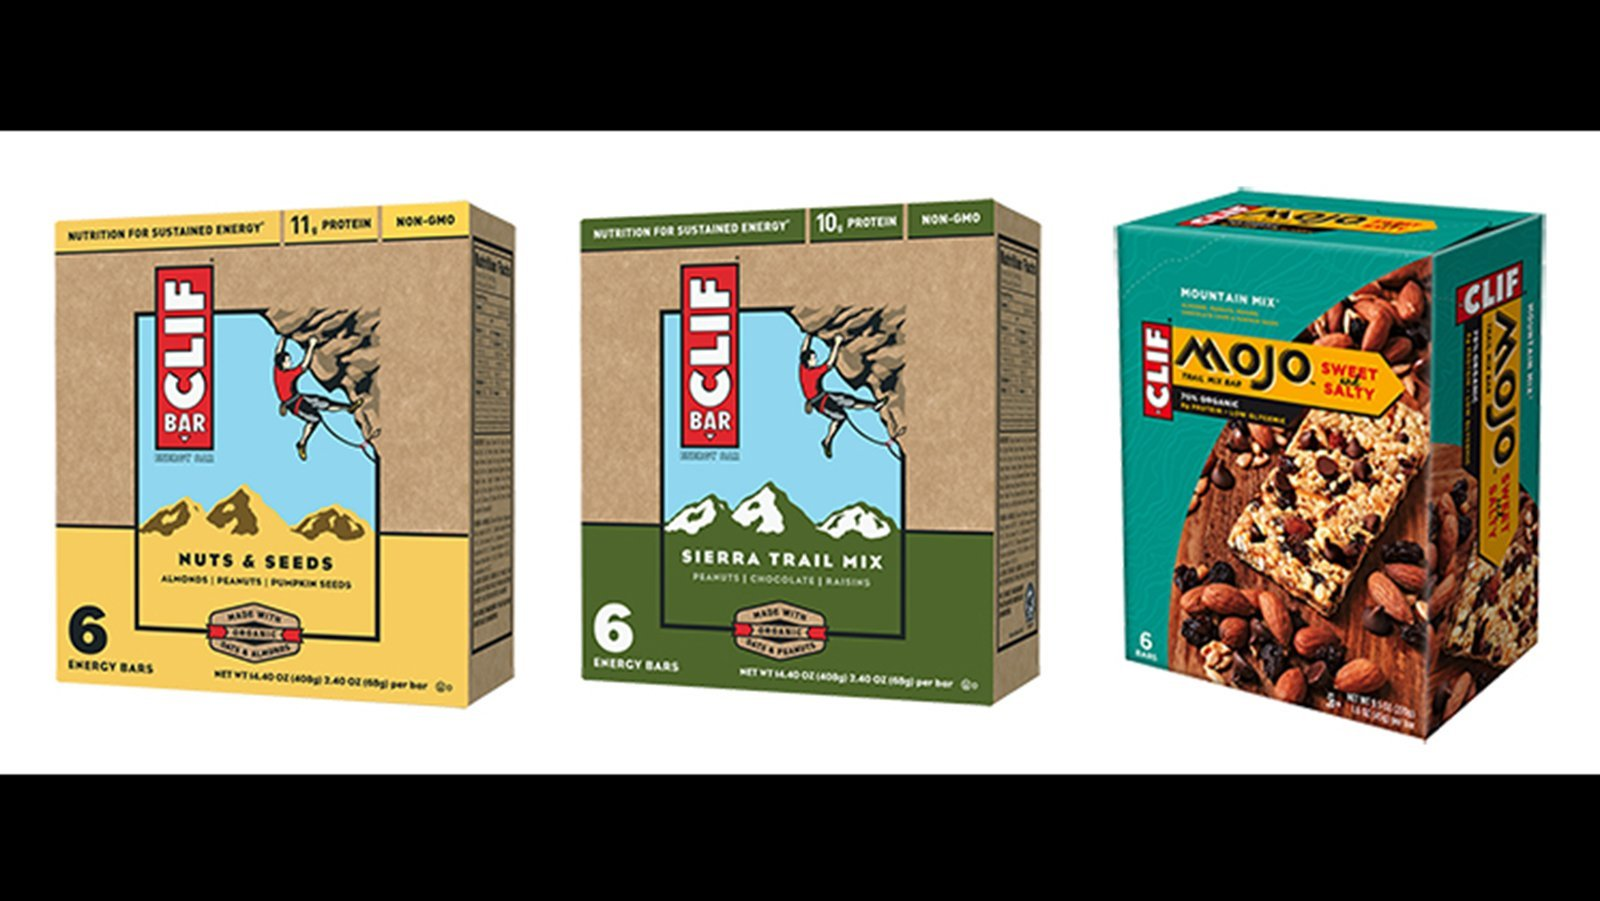 Clif Bars join list of products recalled over listeria concern